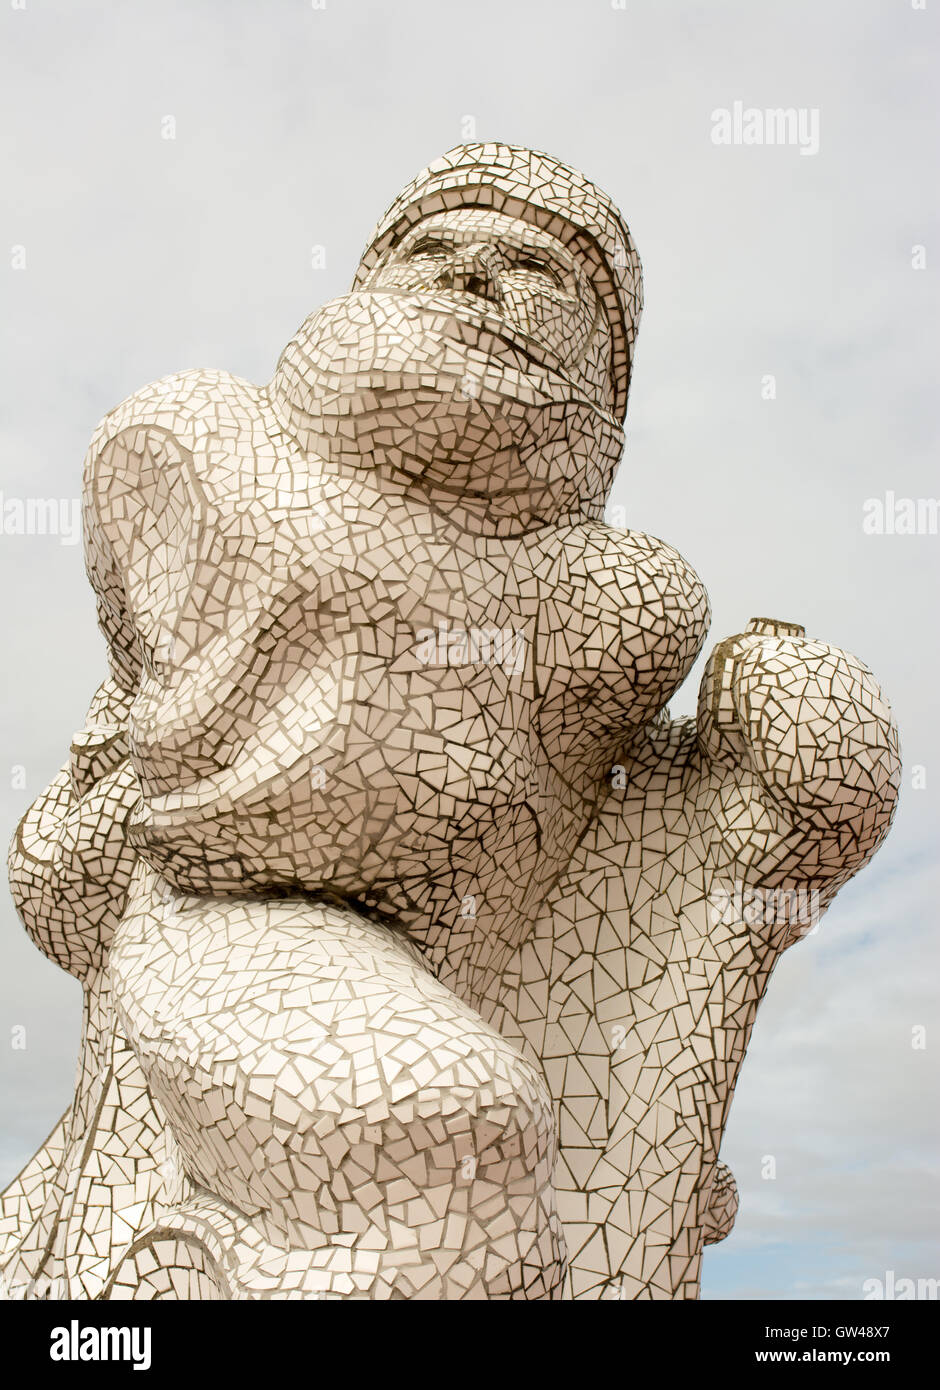 Mosaic tiled memorial sculpture of adventurer Captain Scott of the Antarctic at Cardiff Bay, Wales, UK unveiled - Stock Image